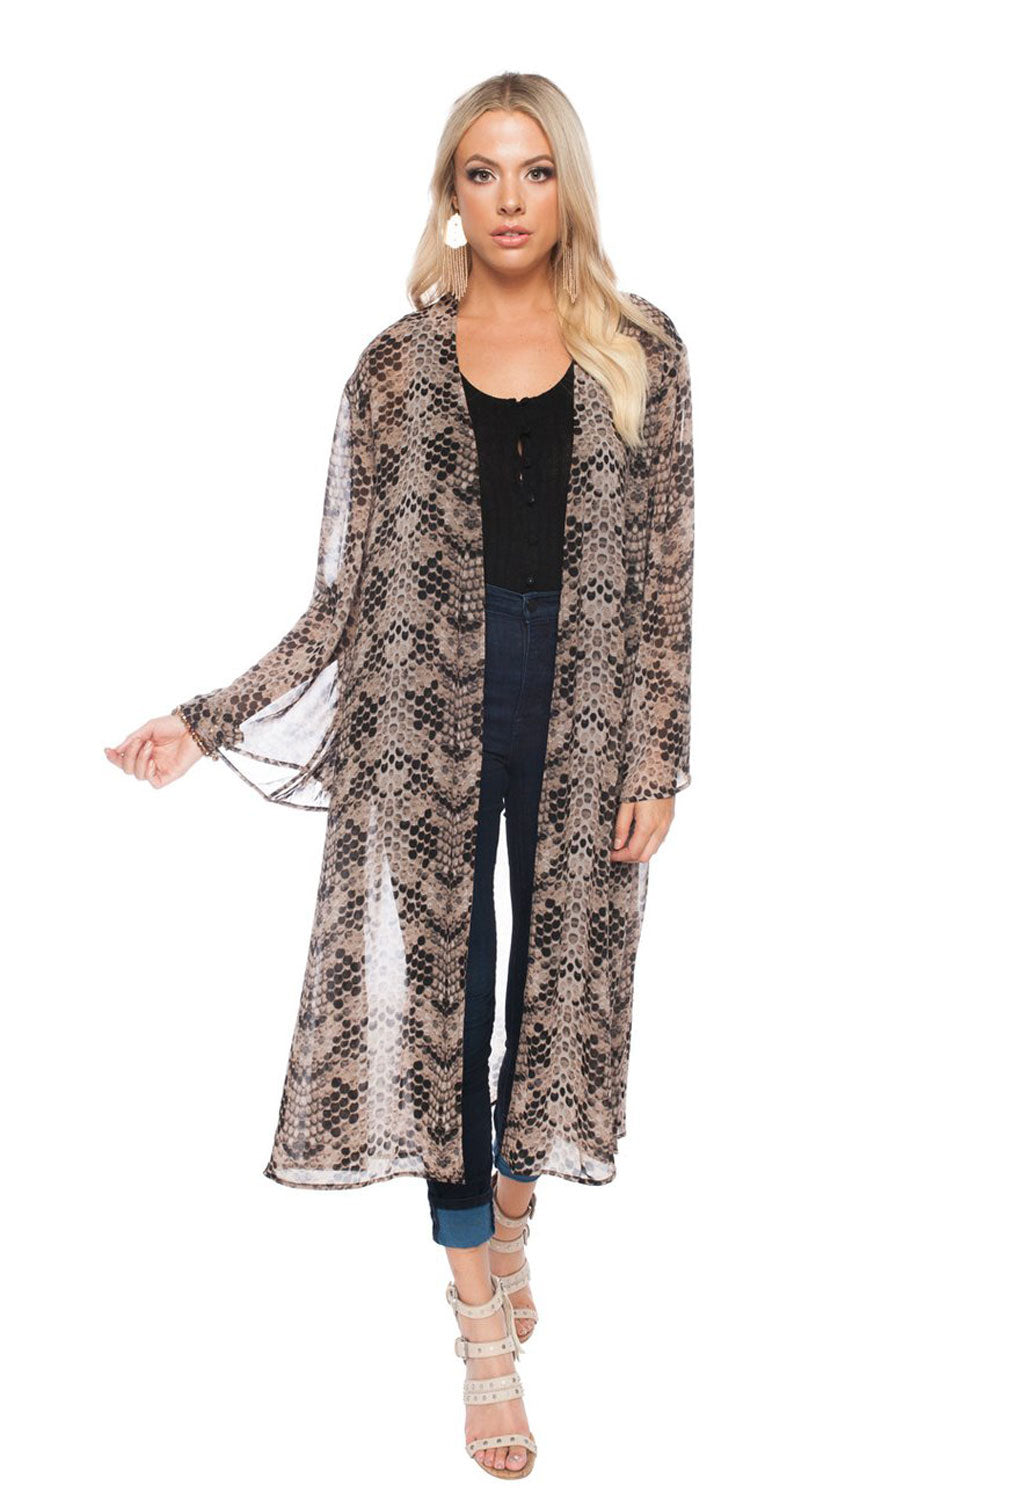 Roberts Duster Wrap - Amazon